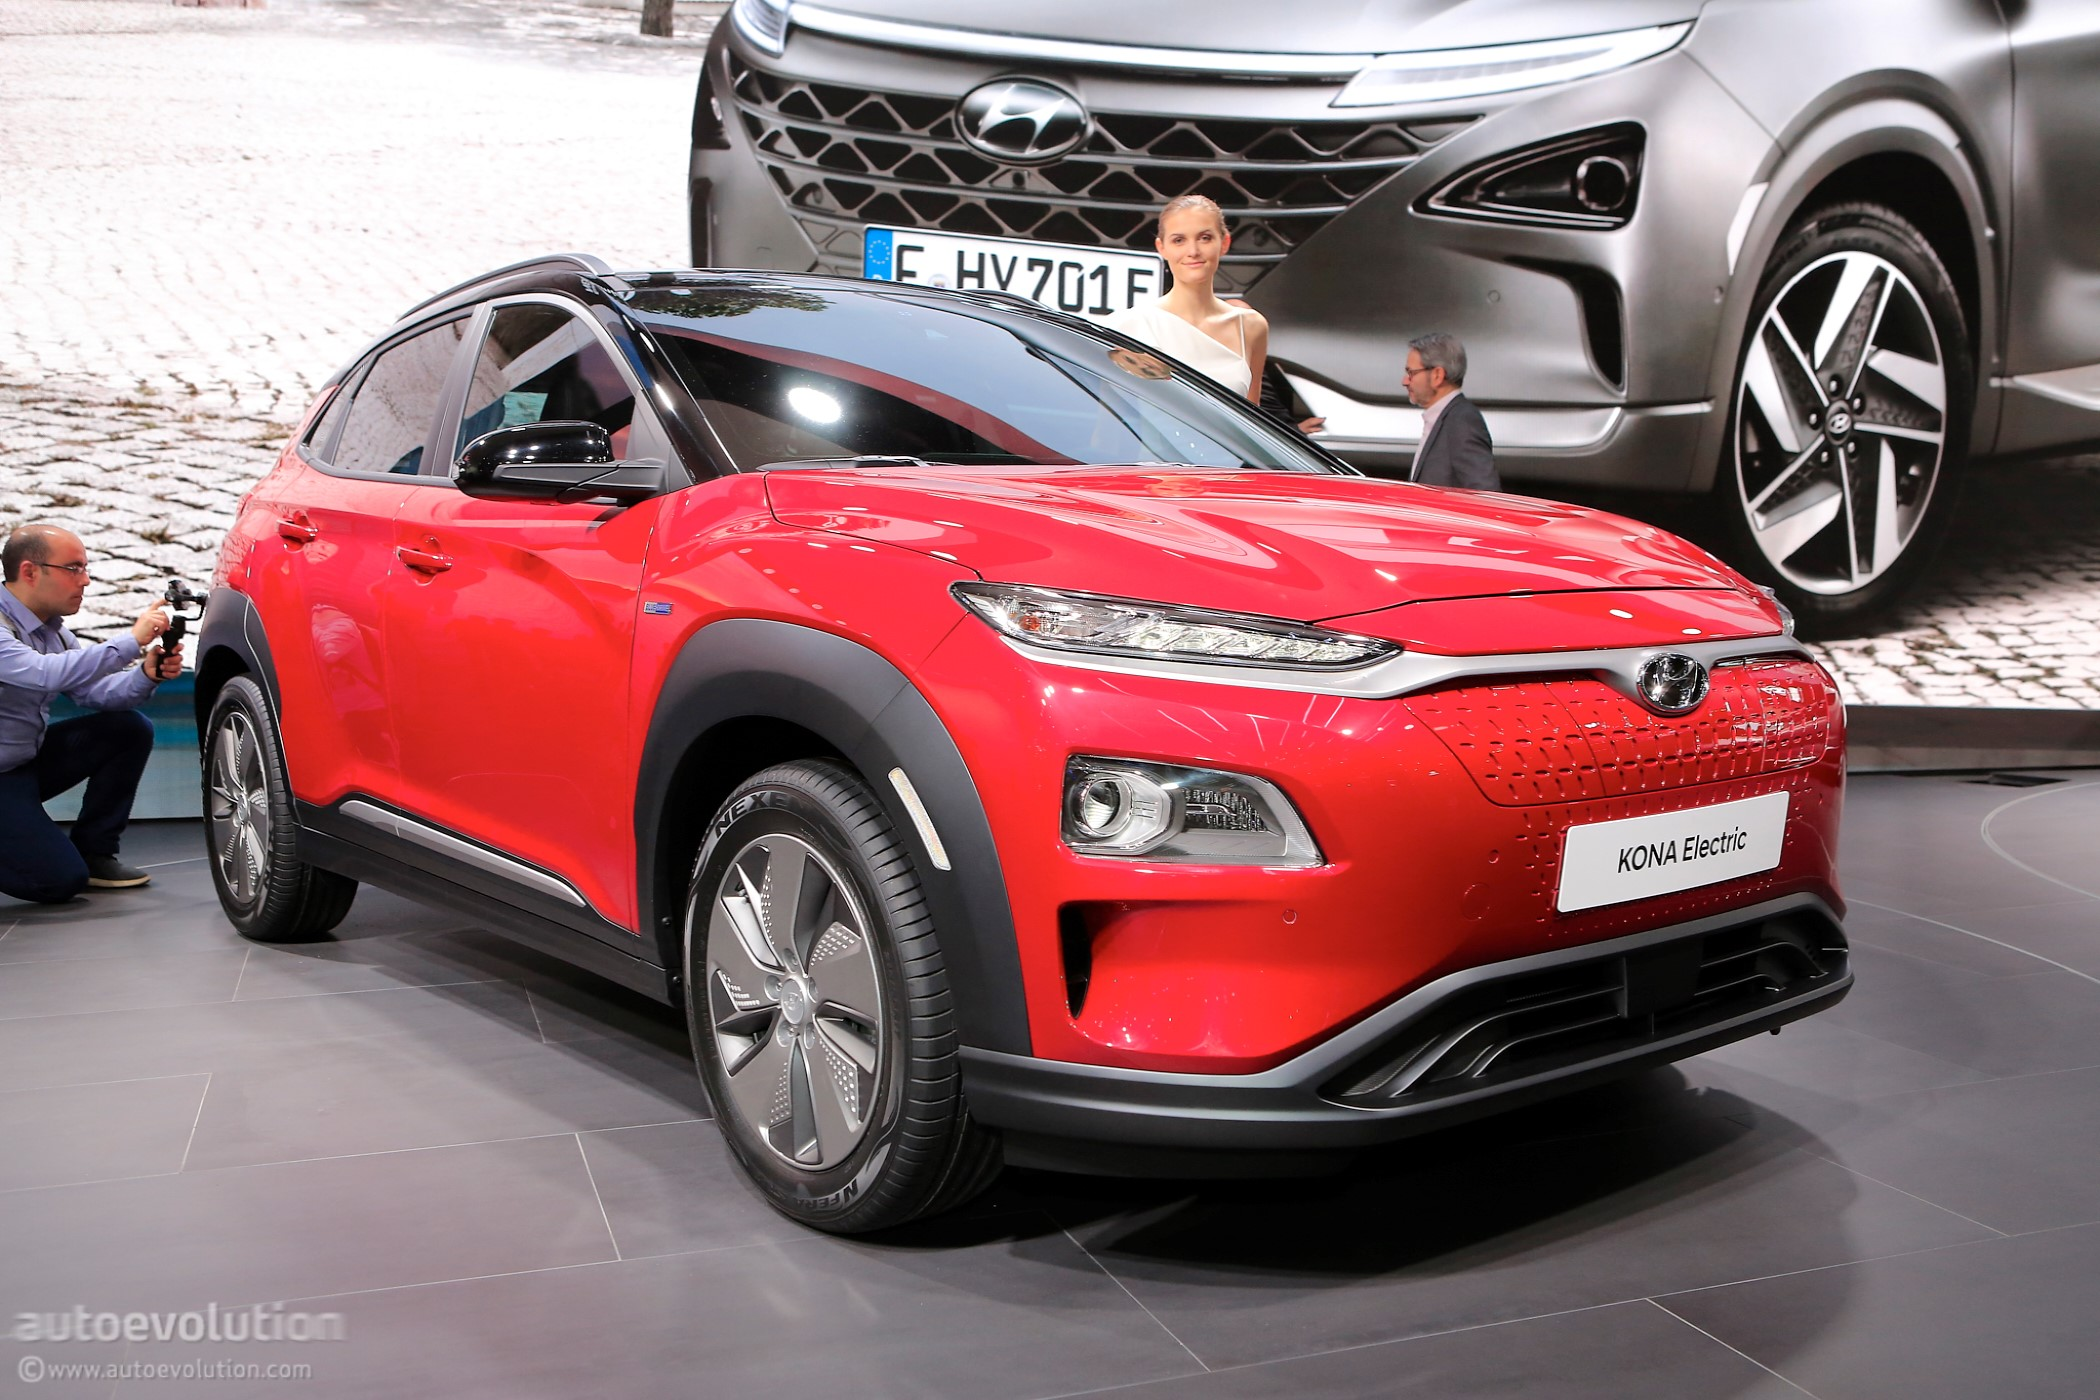 Facelift Tucson 2018 >> Hyundai Pulls The Plug On ICE In Geneva With The All-New Kona Electric - autoevolution